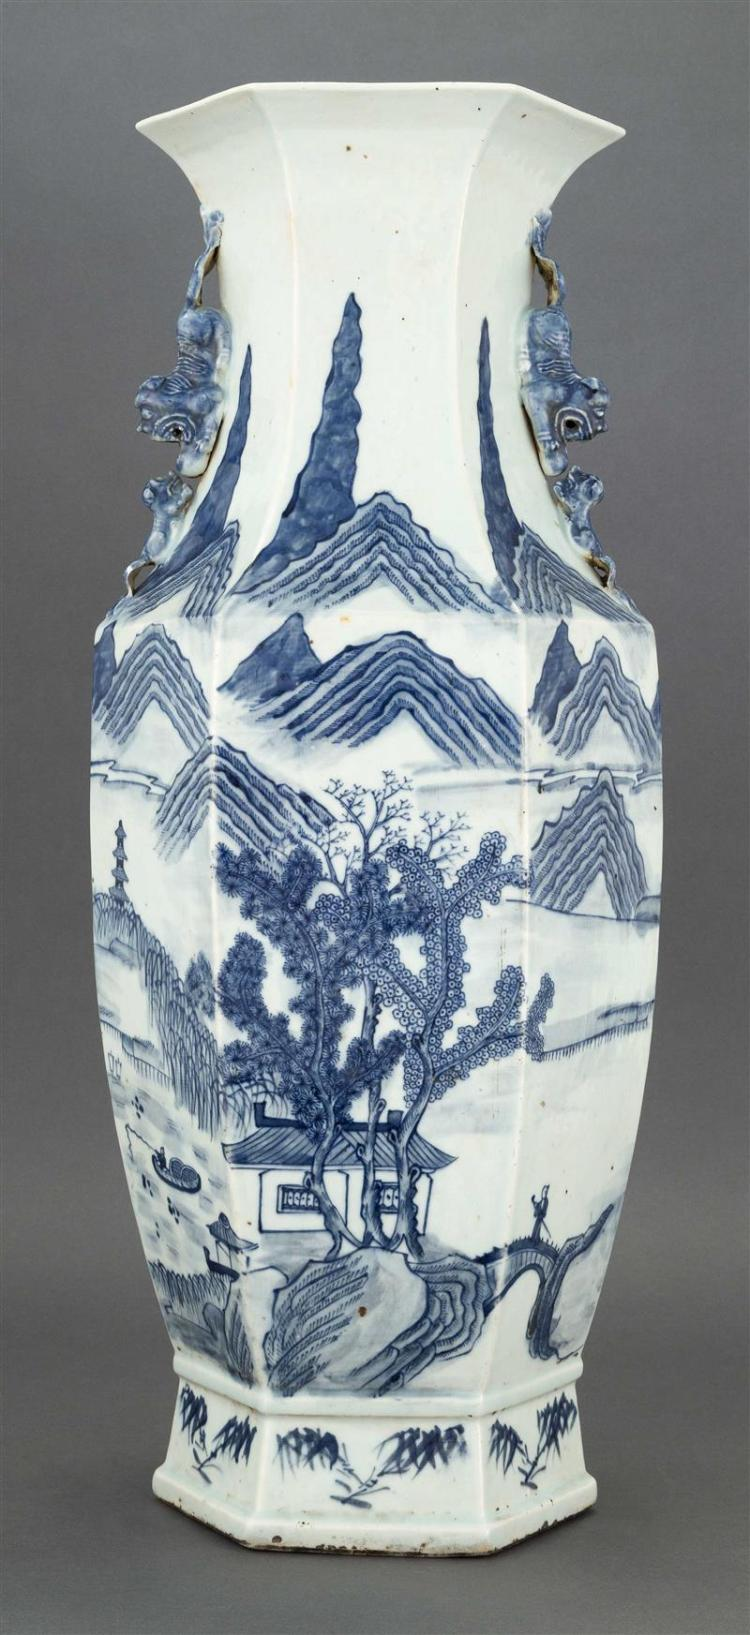 BLUE AND WHITE PORCELAIN VASE In hexagonal form with lion handles and landscape decoration. Height 23.5